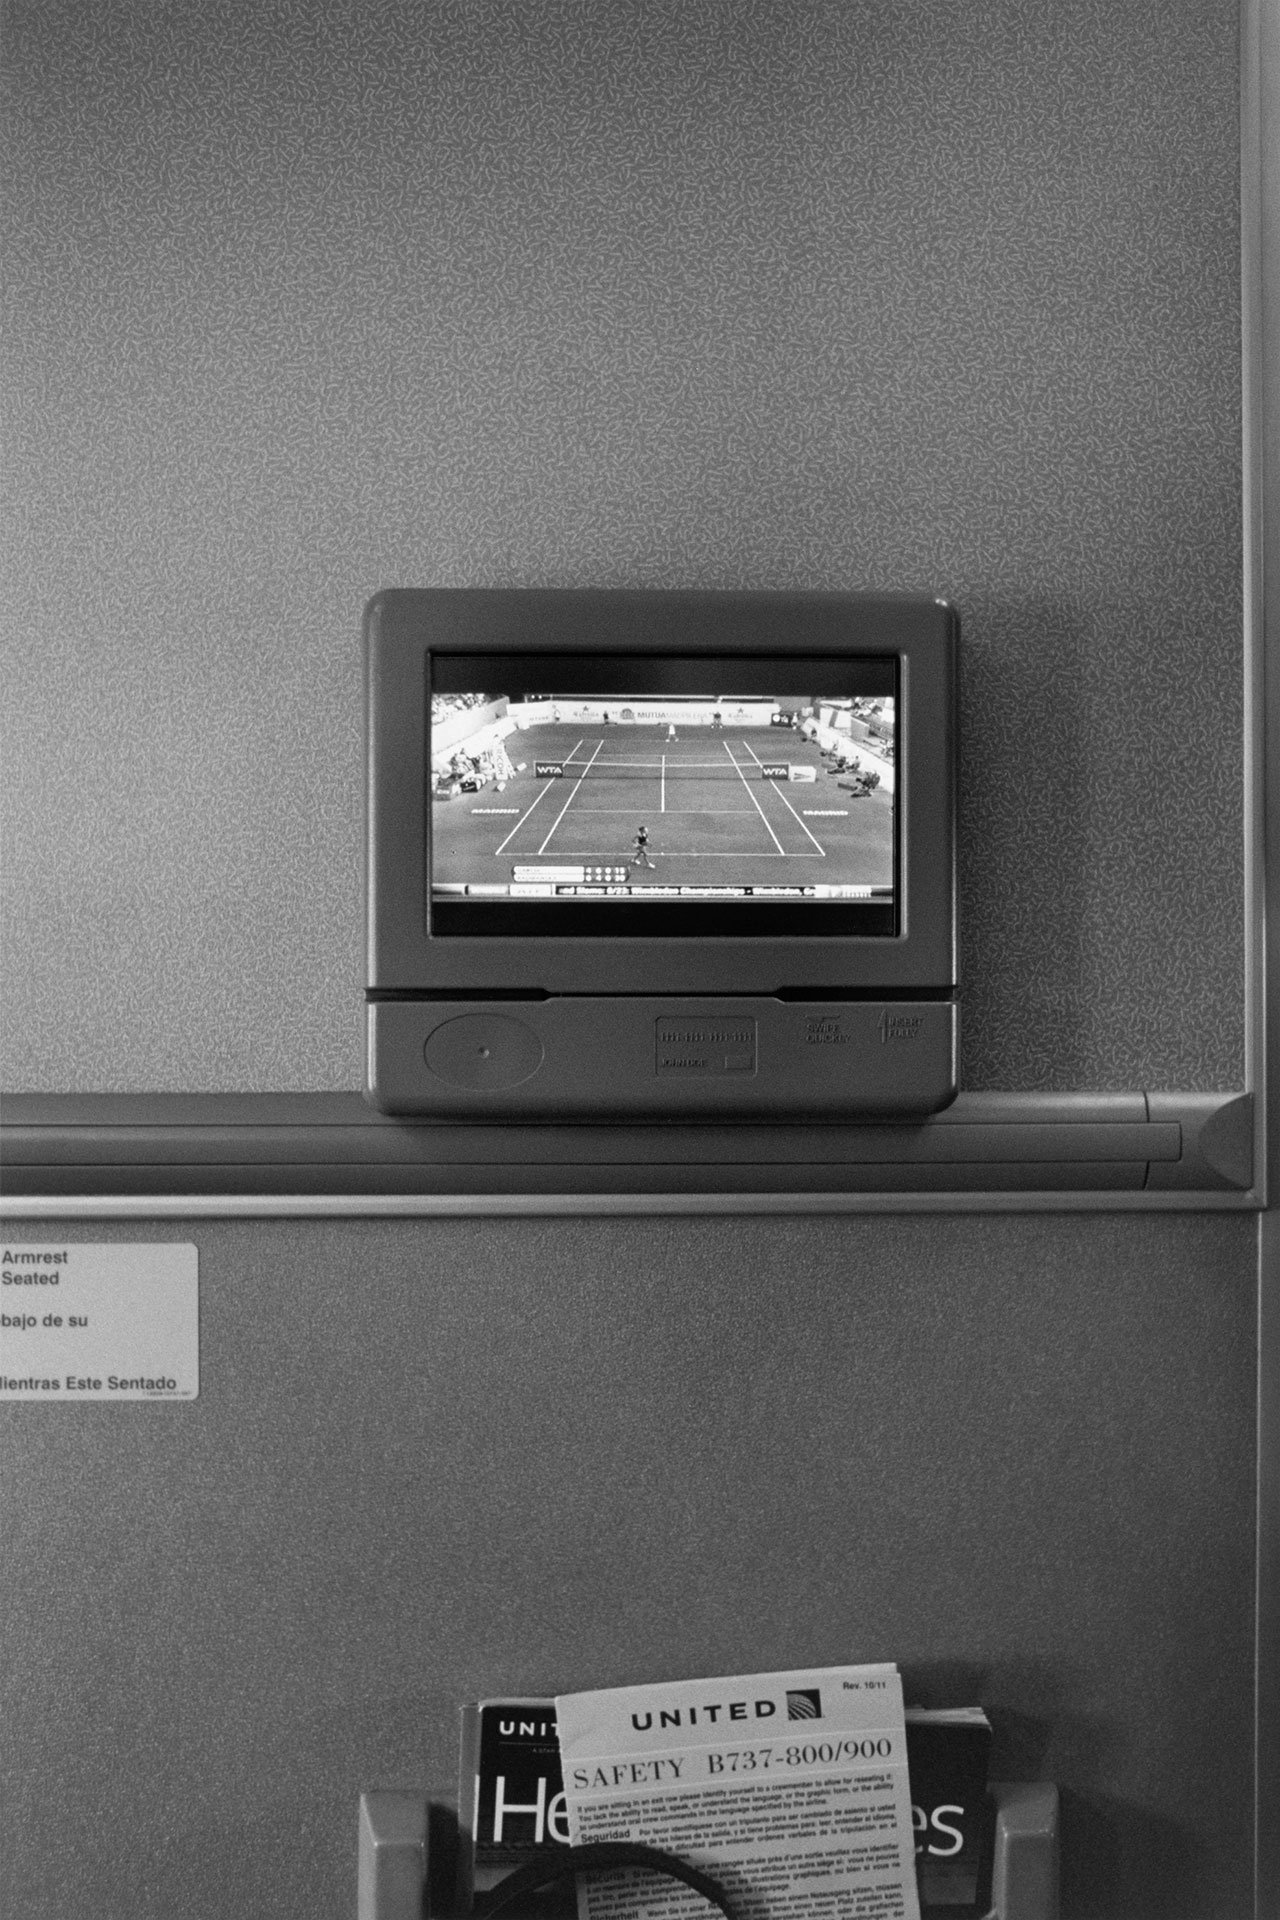 Watching tennis on United Airlines flight 2013.Photo © Stephan Würth.